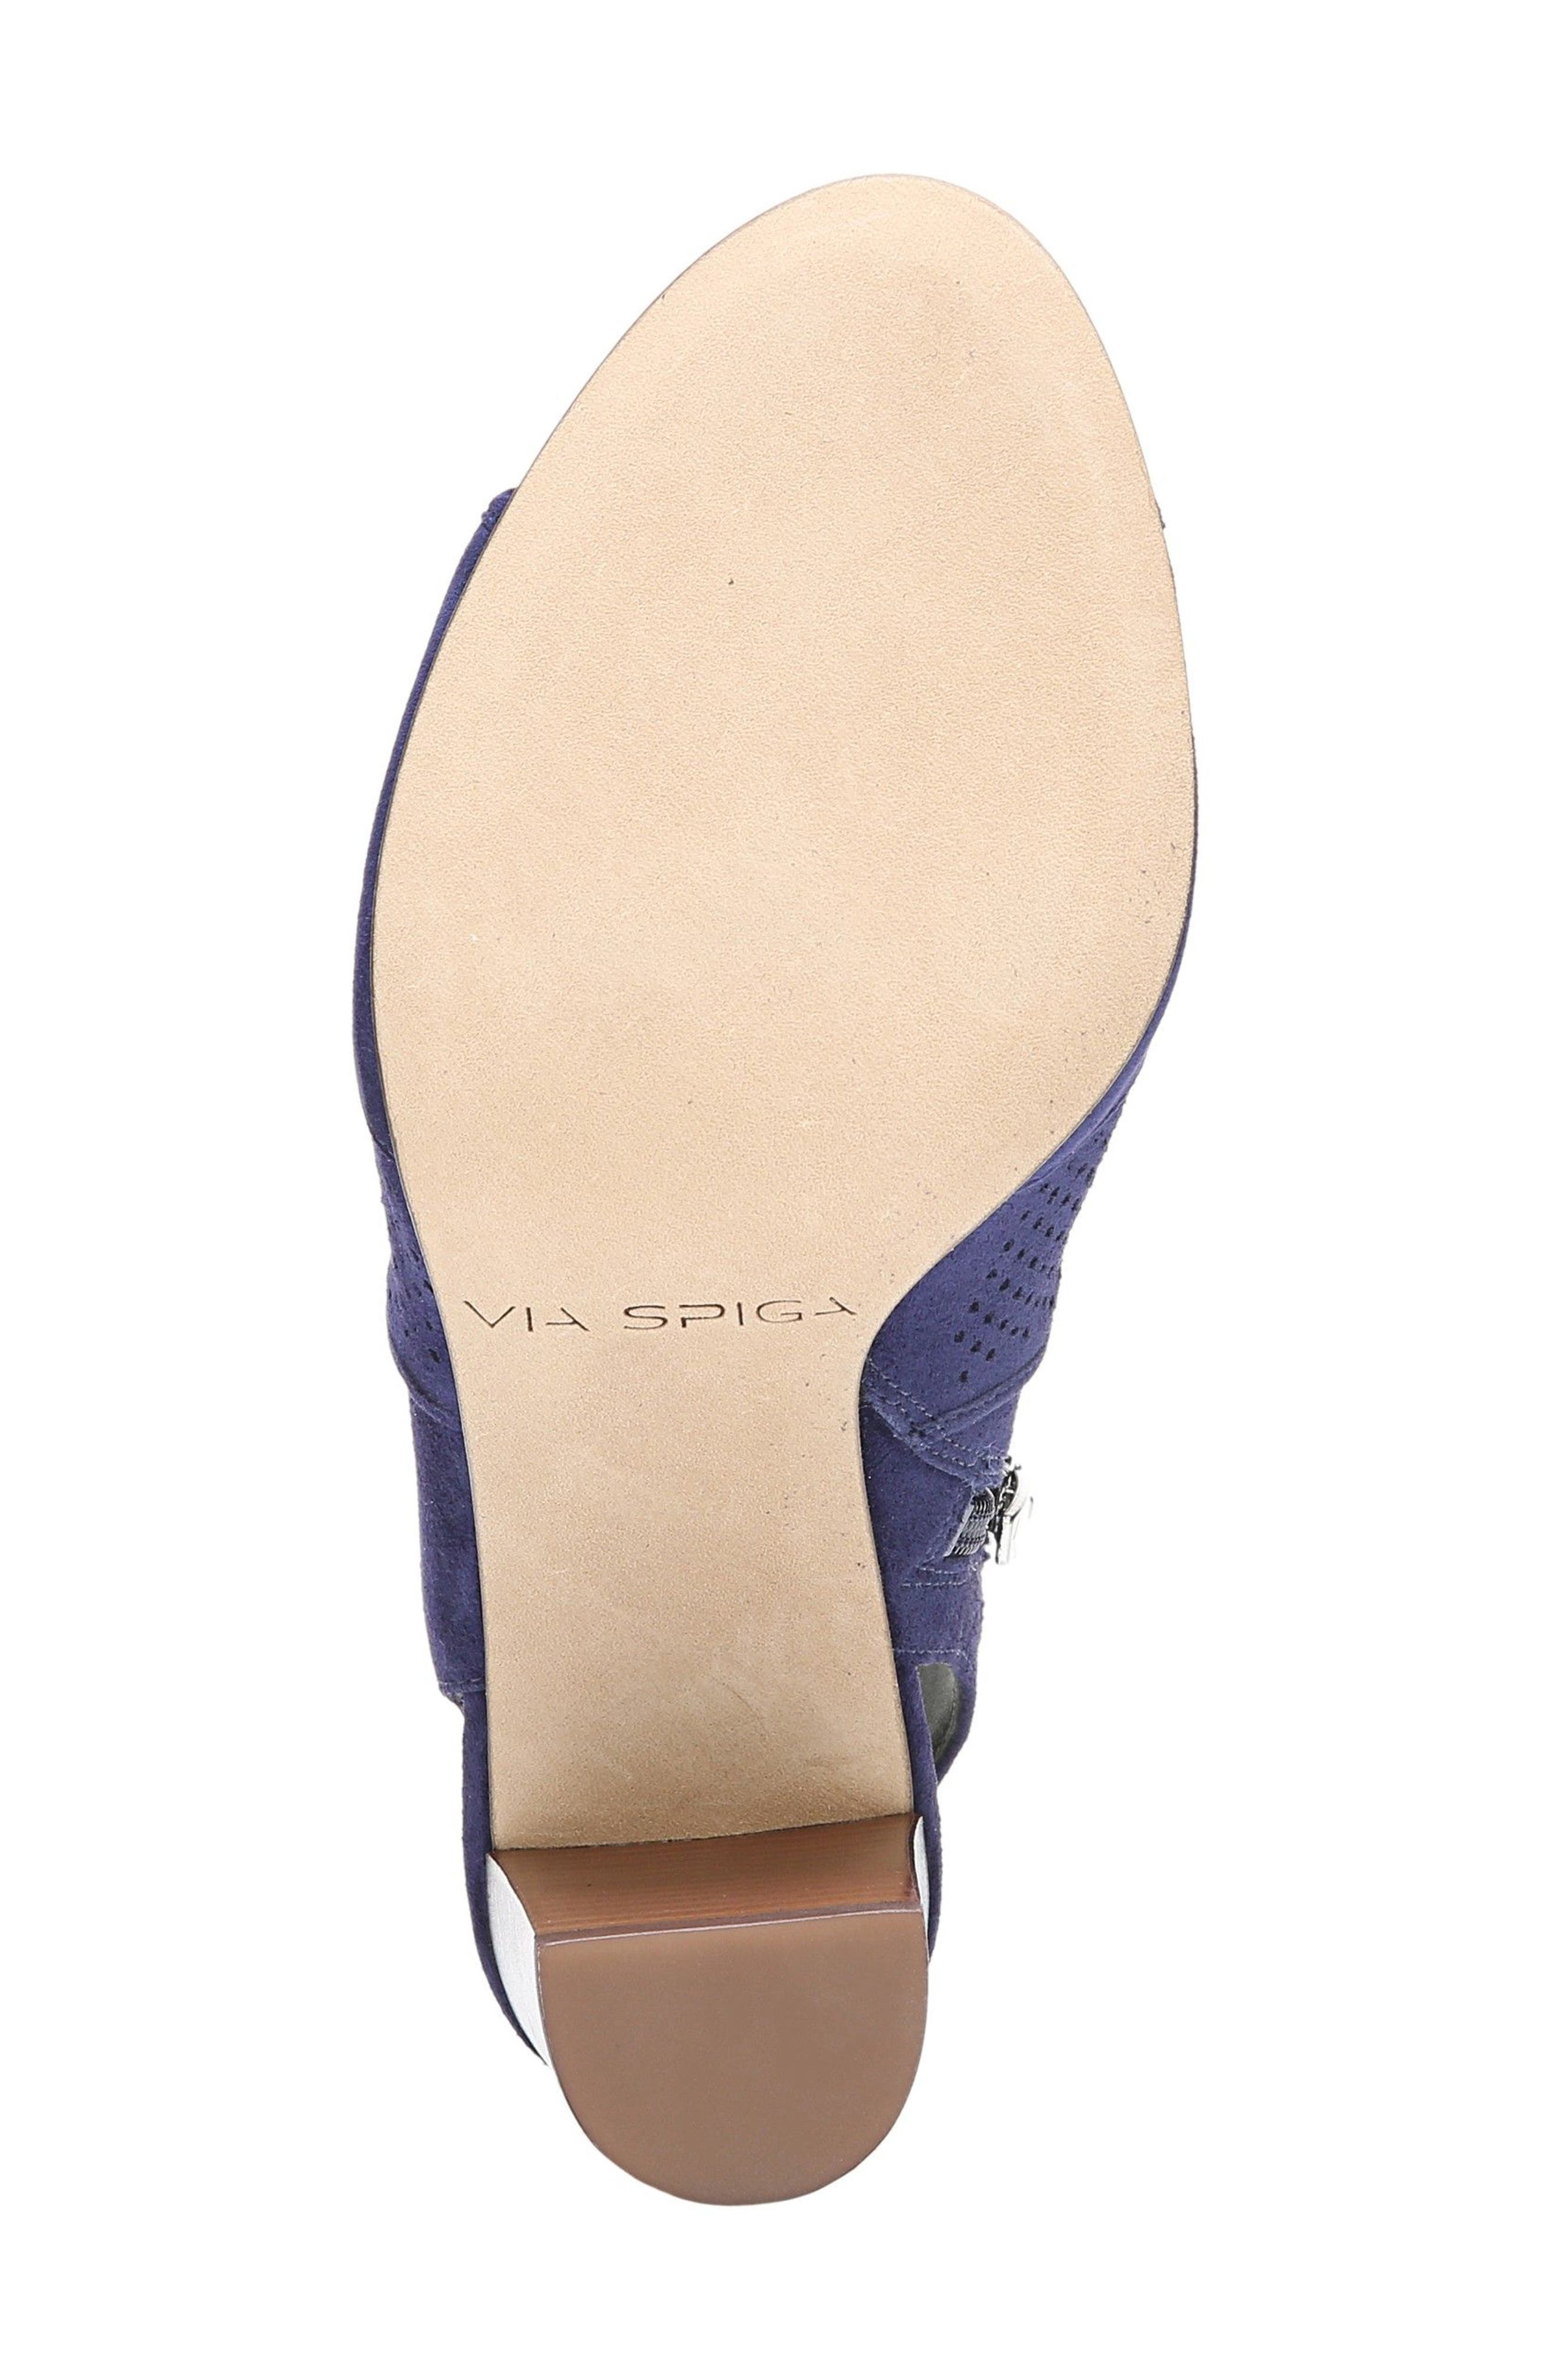 Gaze Block Heel Sandal,                             Alternate thumbnail 6, color,                             Marina Blue Suede